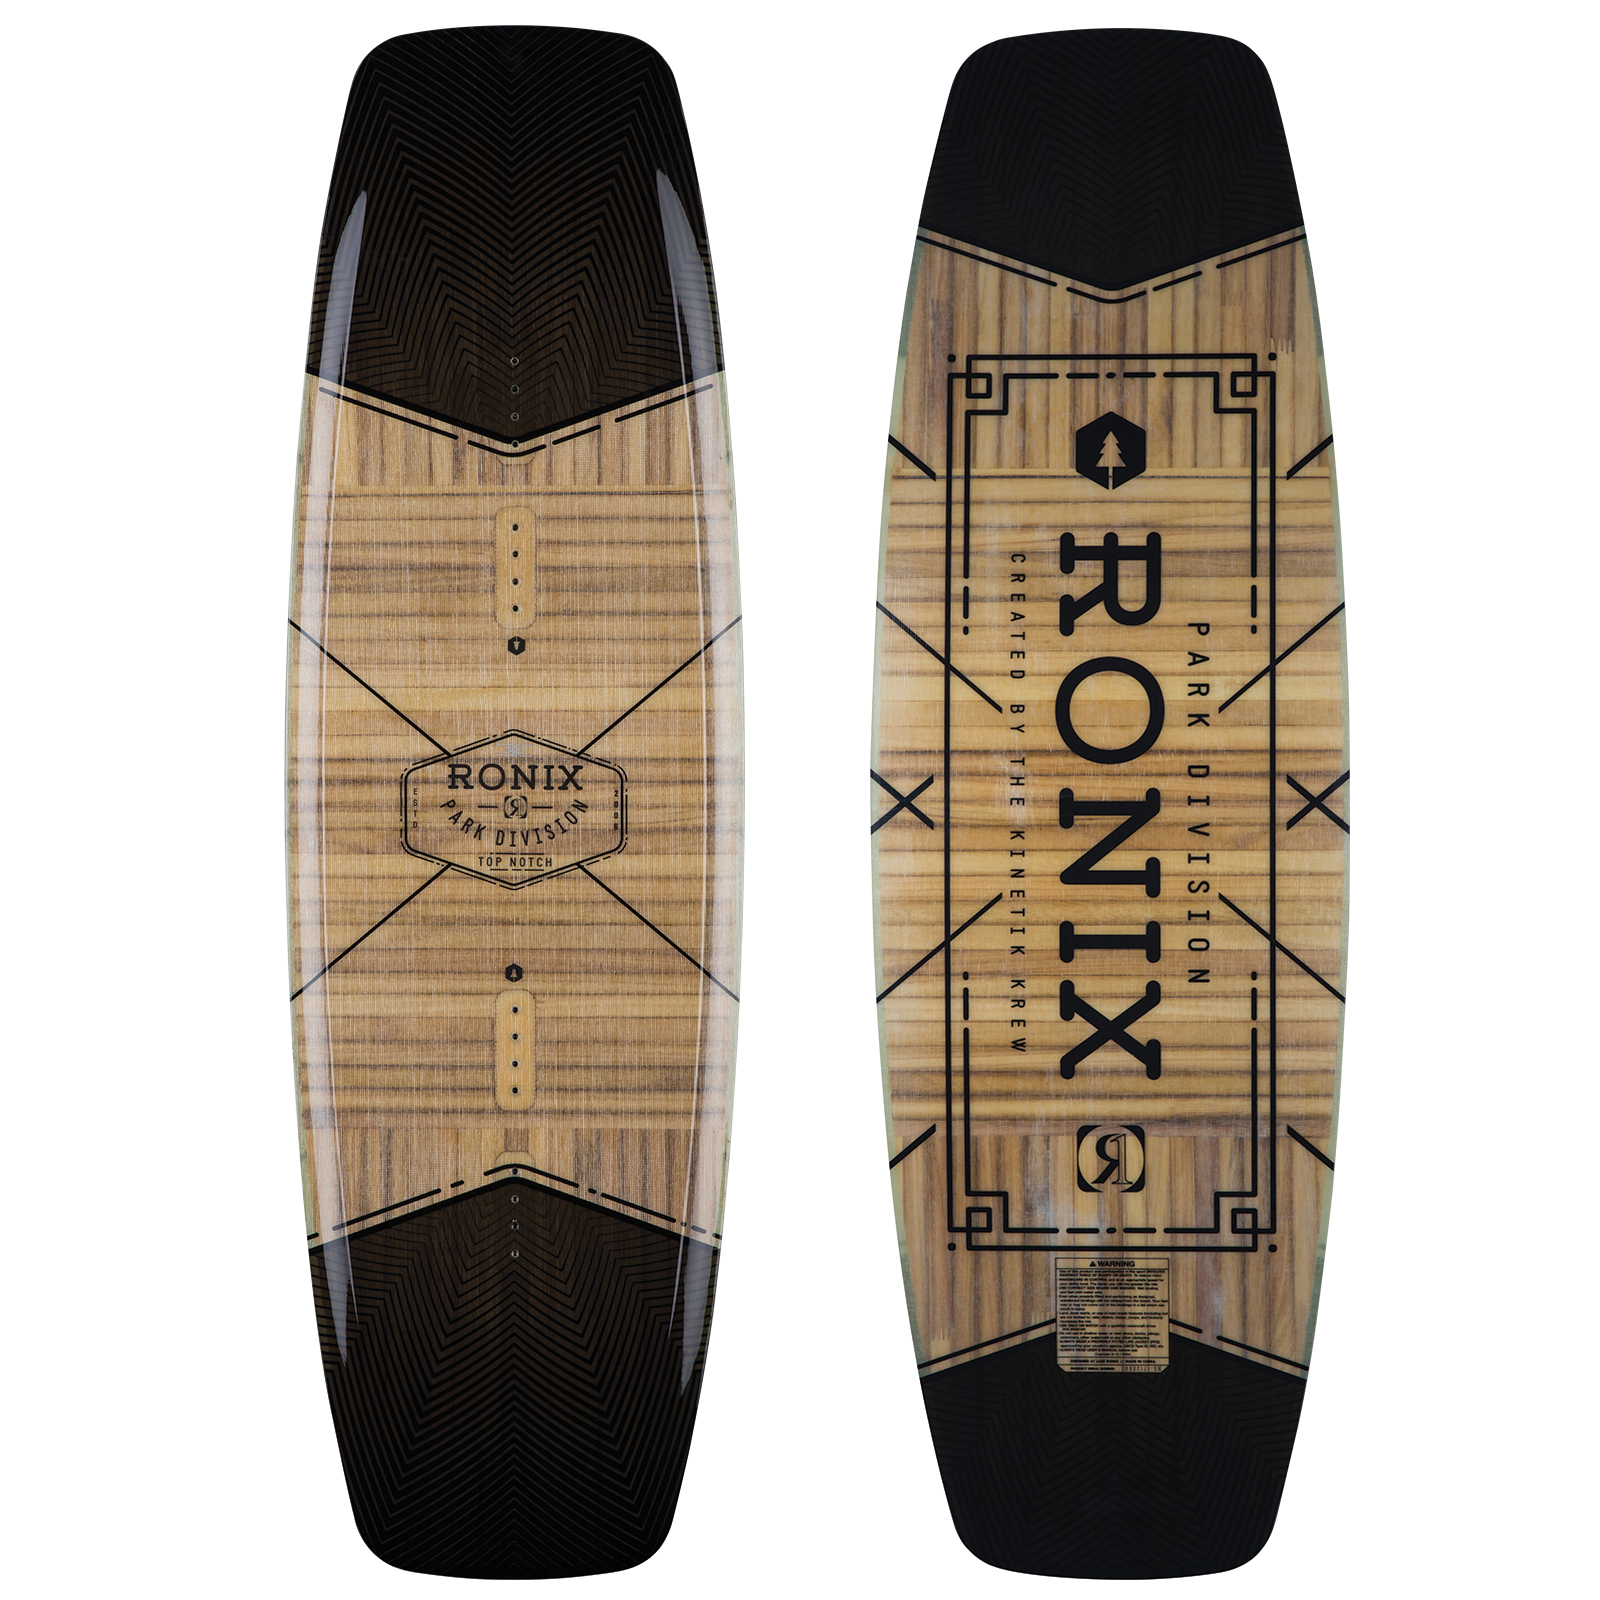 TOP NOTCH NU CORE 2.0 WAKEBOARD RONIX 2018